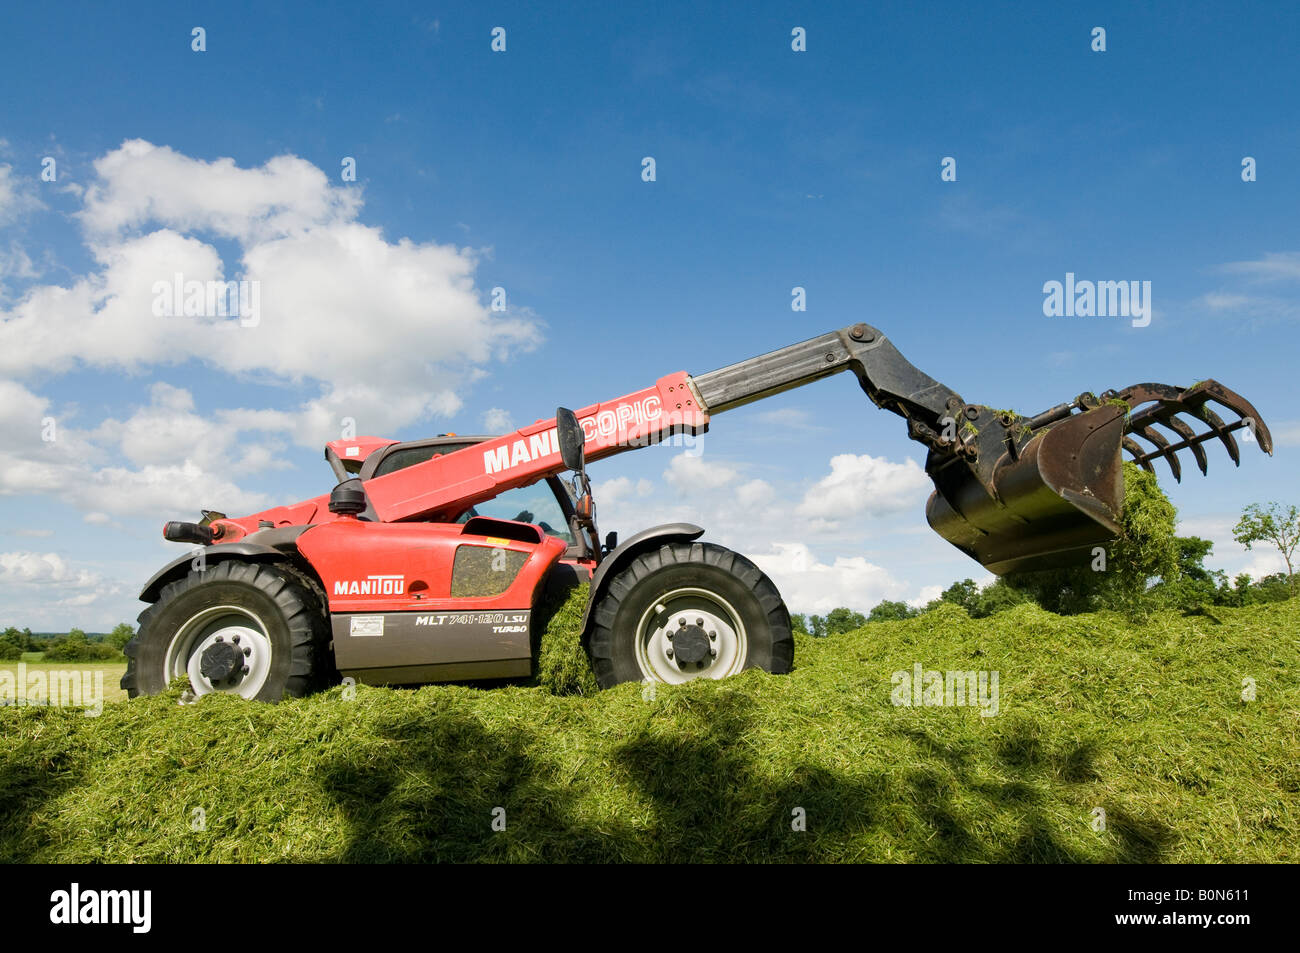 Silage collection - bulldozer / grab tractor, sud-Touraine, France. - Stock Image